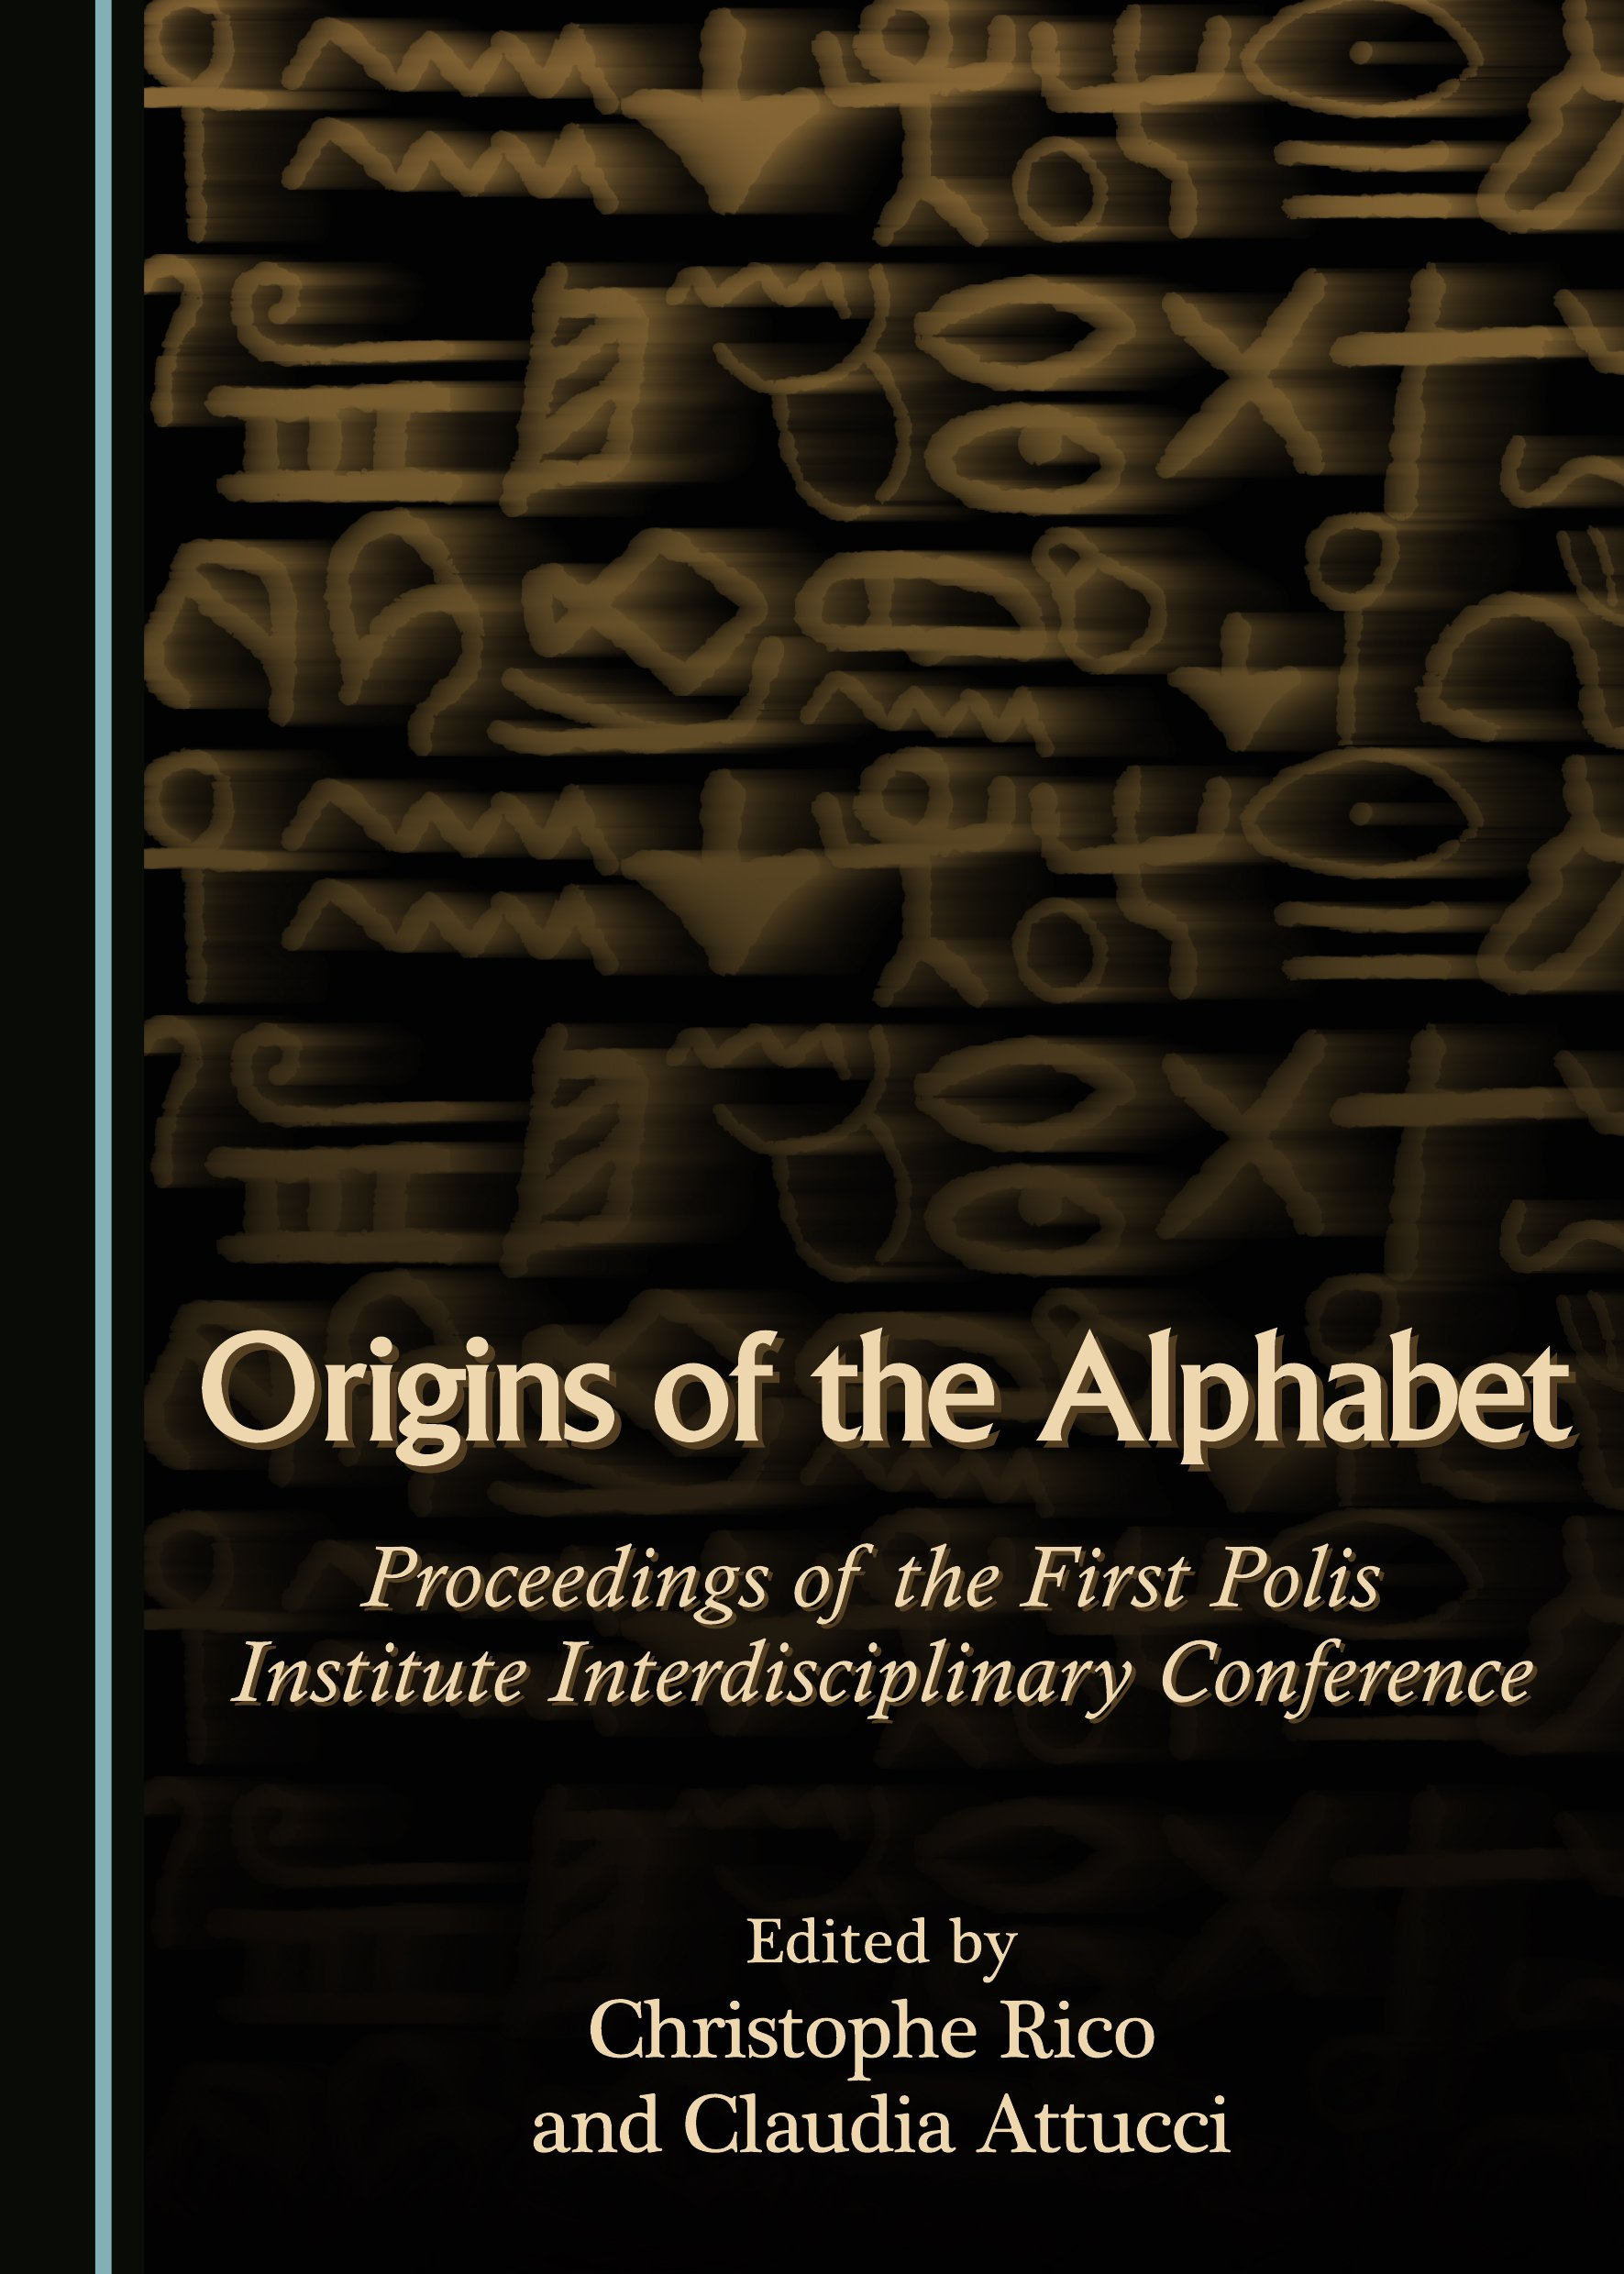 Origins of the Alphabet: Proceedings of the First Polis Institute Interdisciplinary Conference